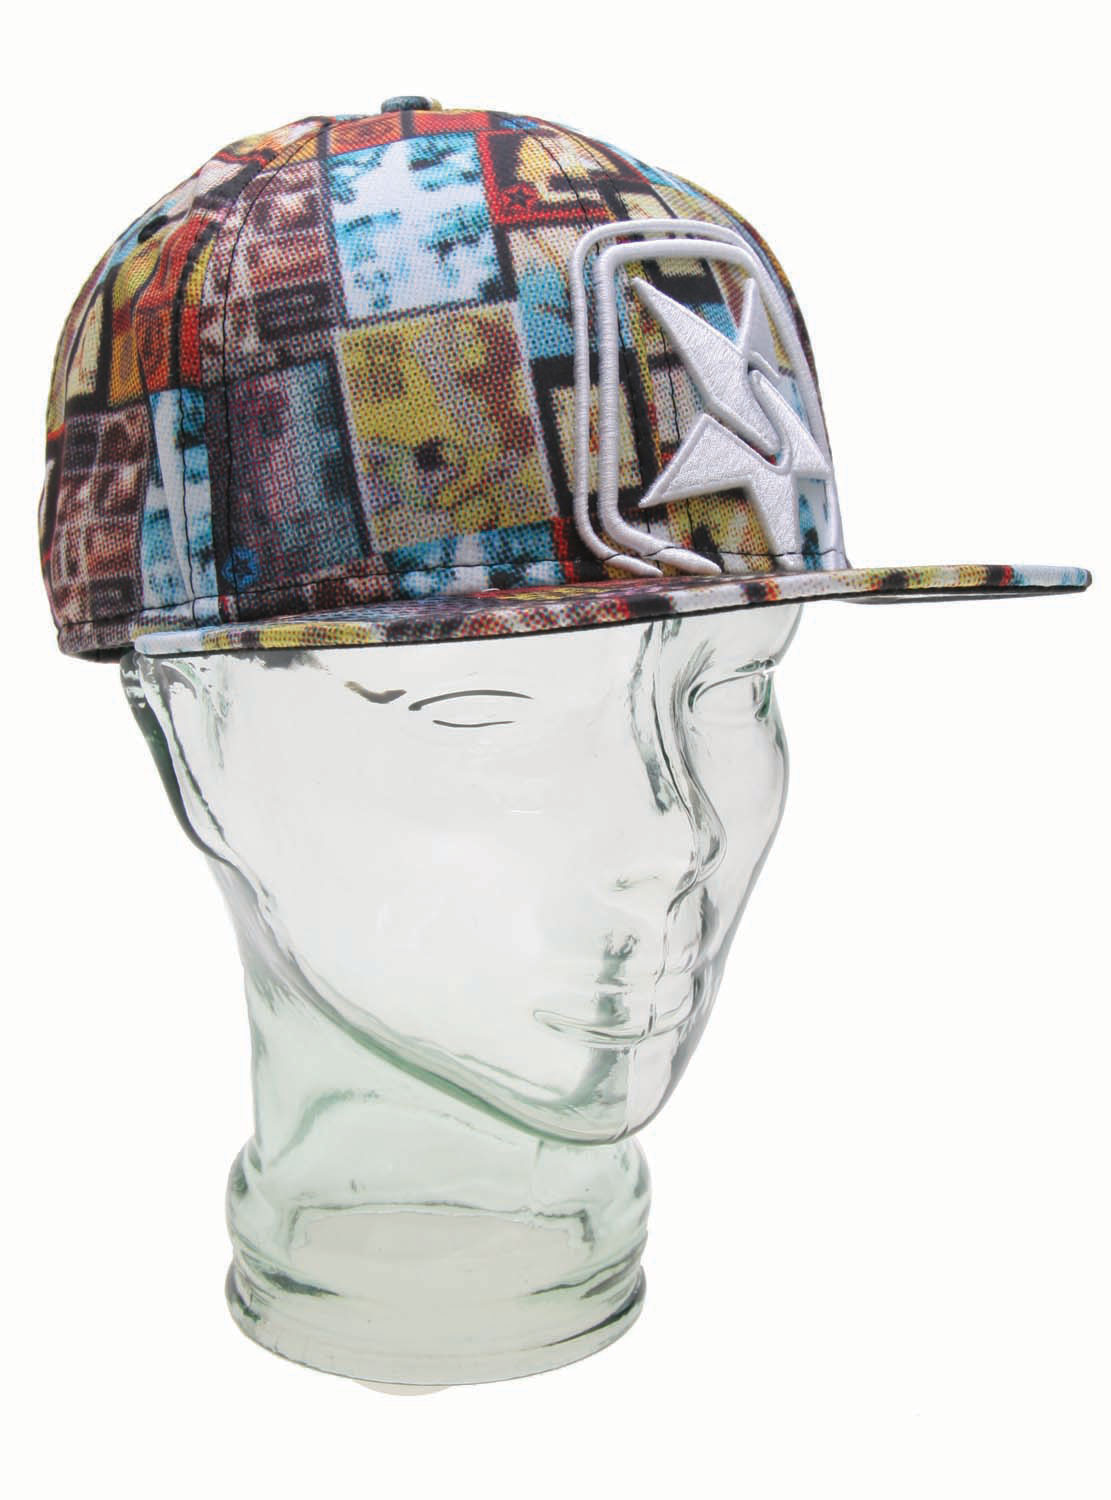 In search of a funky print, something opposite of ordinary? Here's an interesting cap, stylish and unique. The Sessions Pinups New Era Cap Pinups gives that modern touch of bold colors fused into bold prints offering a sense of style for any man. With its logo front and center, it's clear this cap will stand out from them all, attracting attention from all directions. It's a fitted cap, made with 100% cotton. Try it out. Be different.Key Features of The Sessions Pinups New Era Cap: New Era Fitted Ball Cap 100% Cotton - $6.95